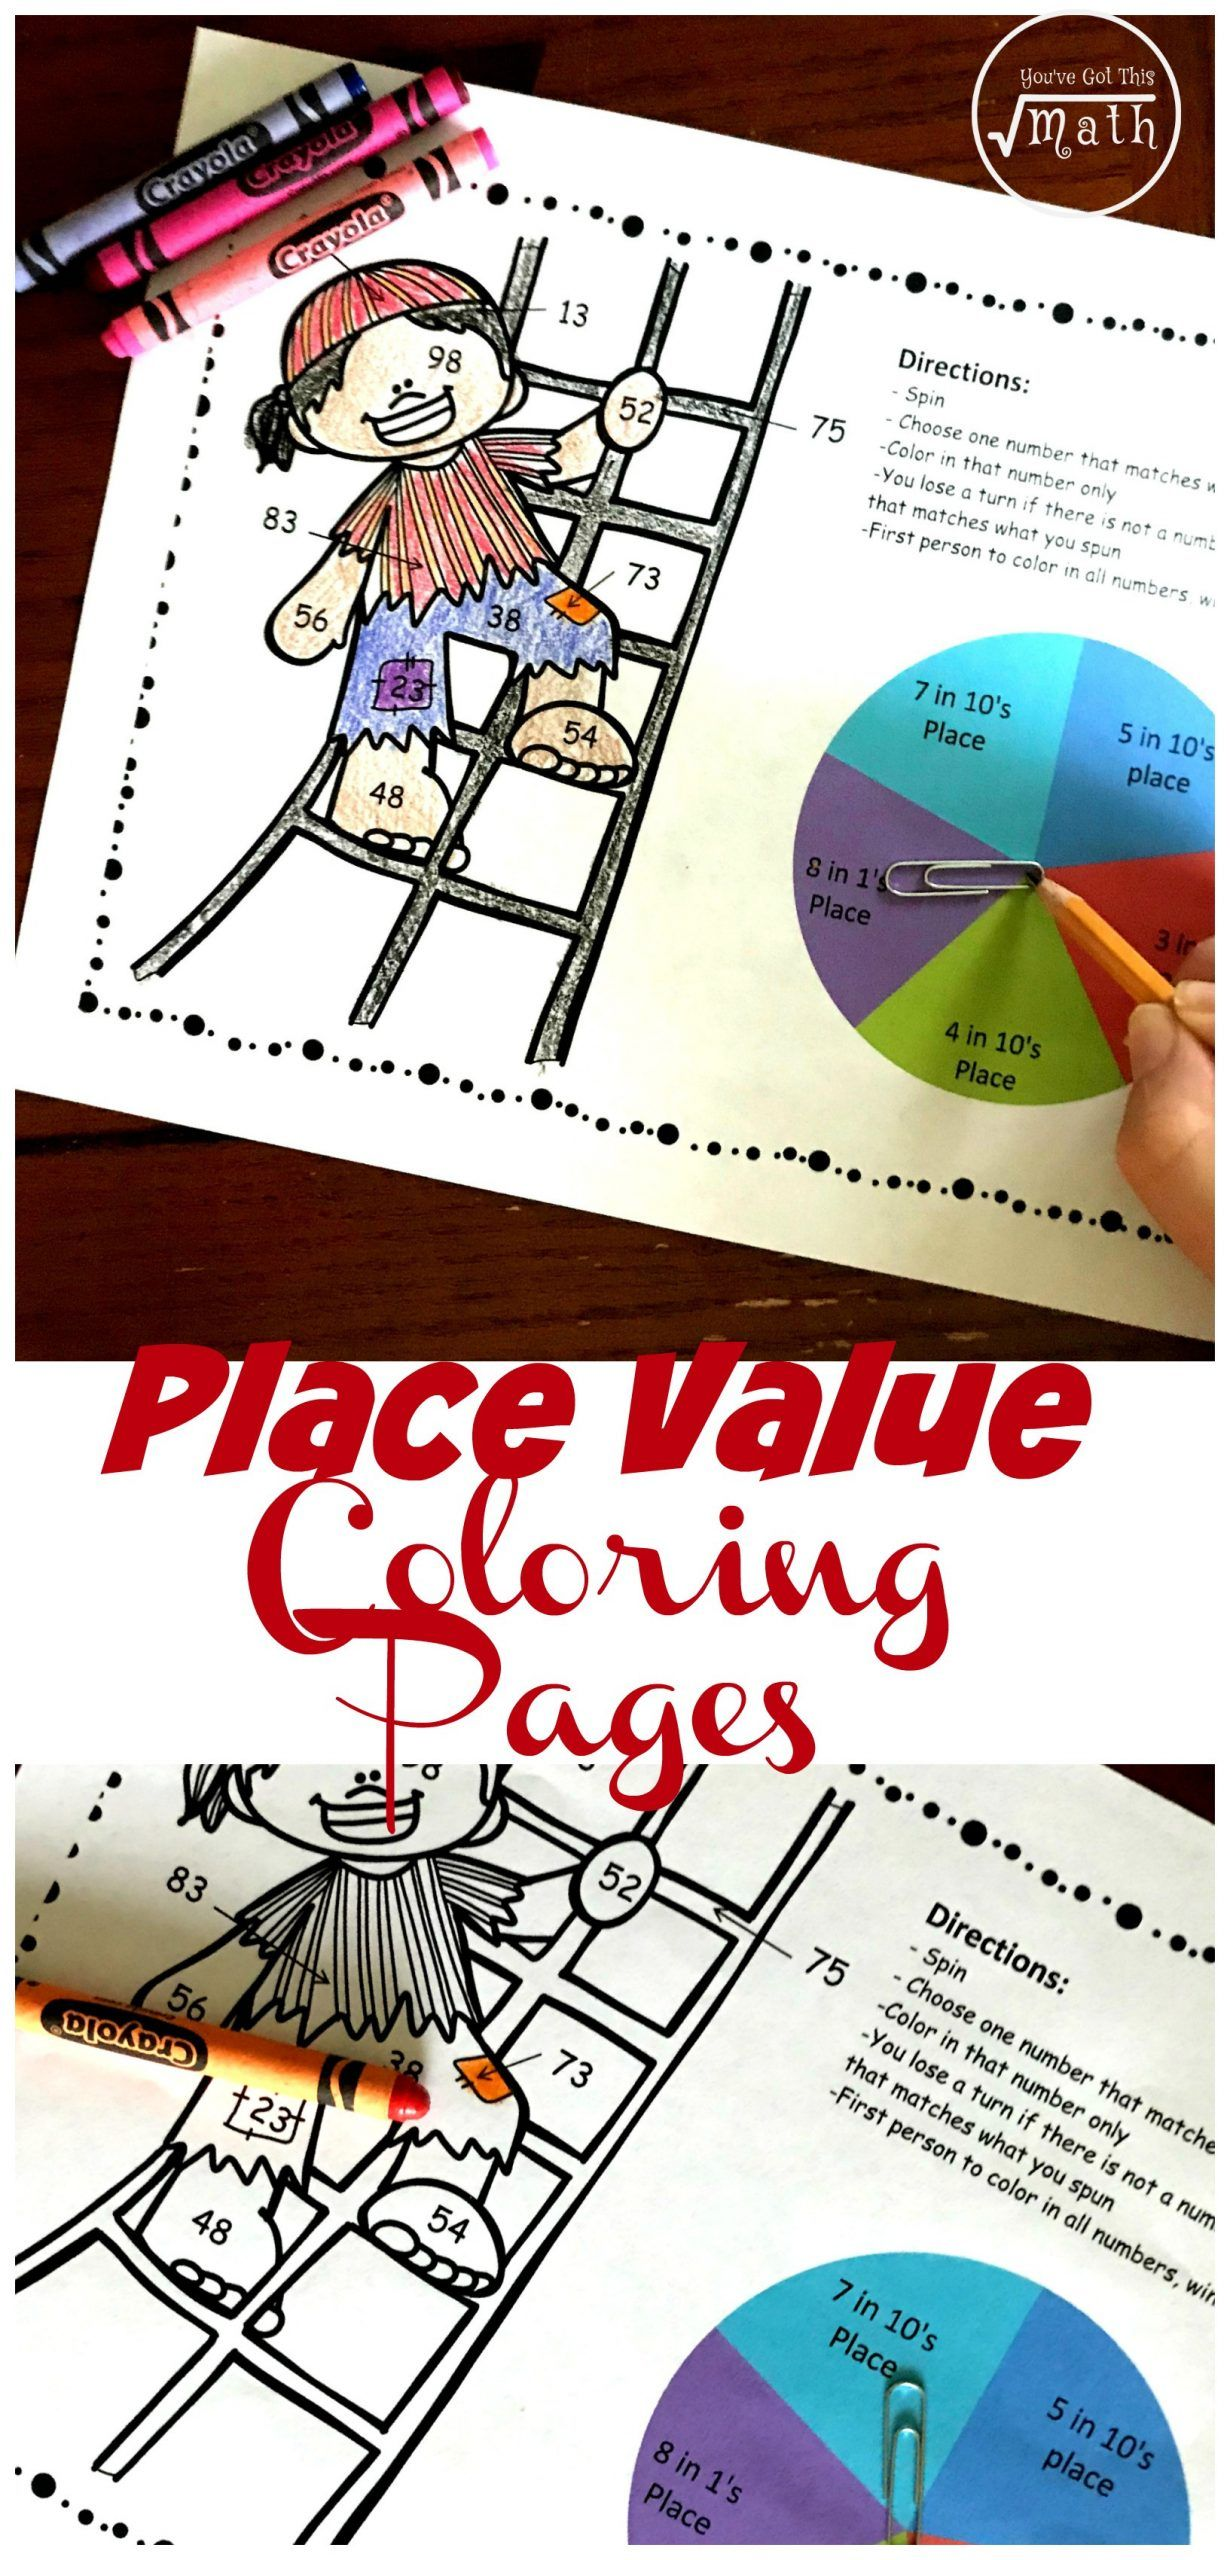 Place Value Coloring Worksheets A Fun Place Value Coloring Page To Practice The Value Digits In 2021 Place Values Color Worksheets Fun Education [ 2560 x 1230 Pixel ]